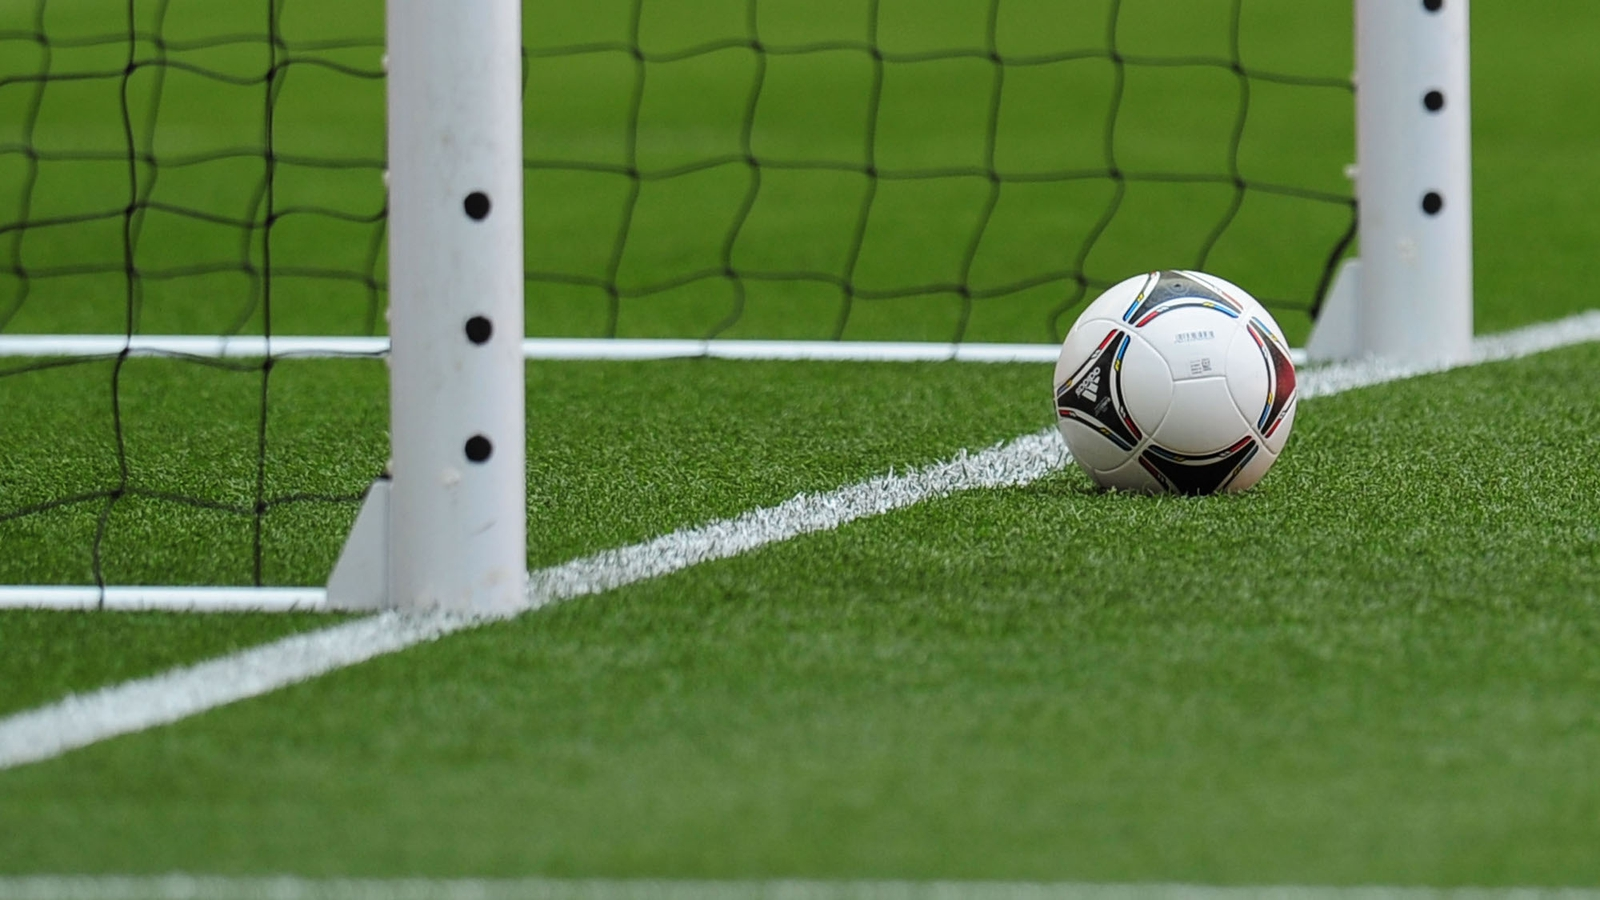 MTK boxing firm establishes agency for soccer players